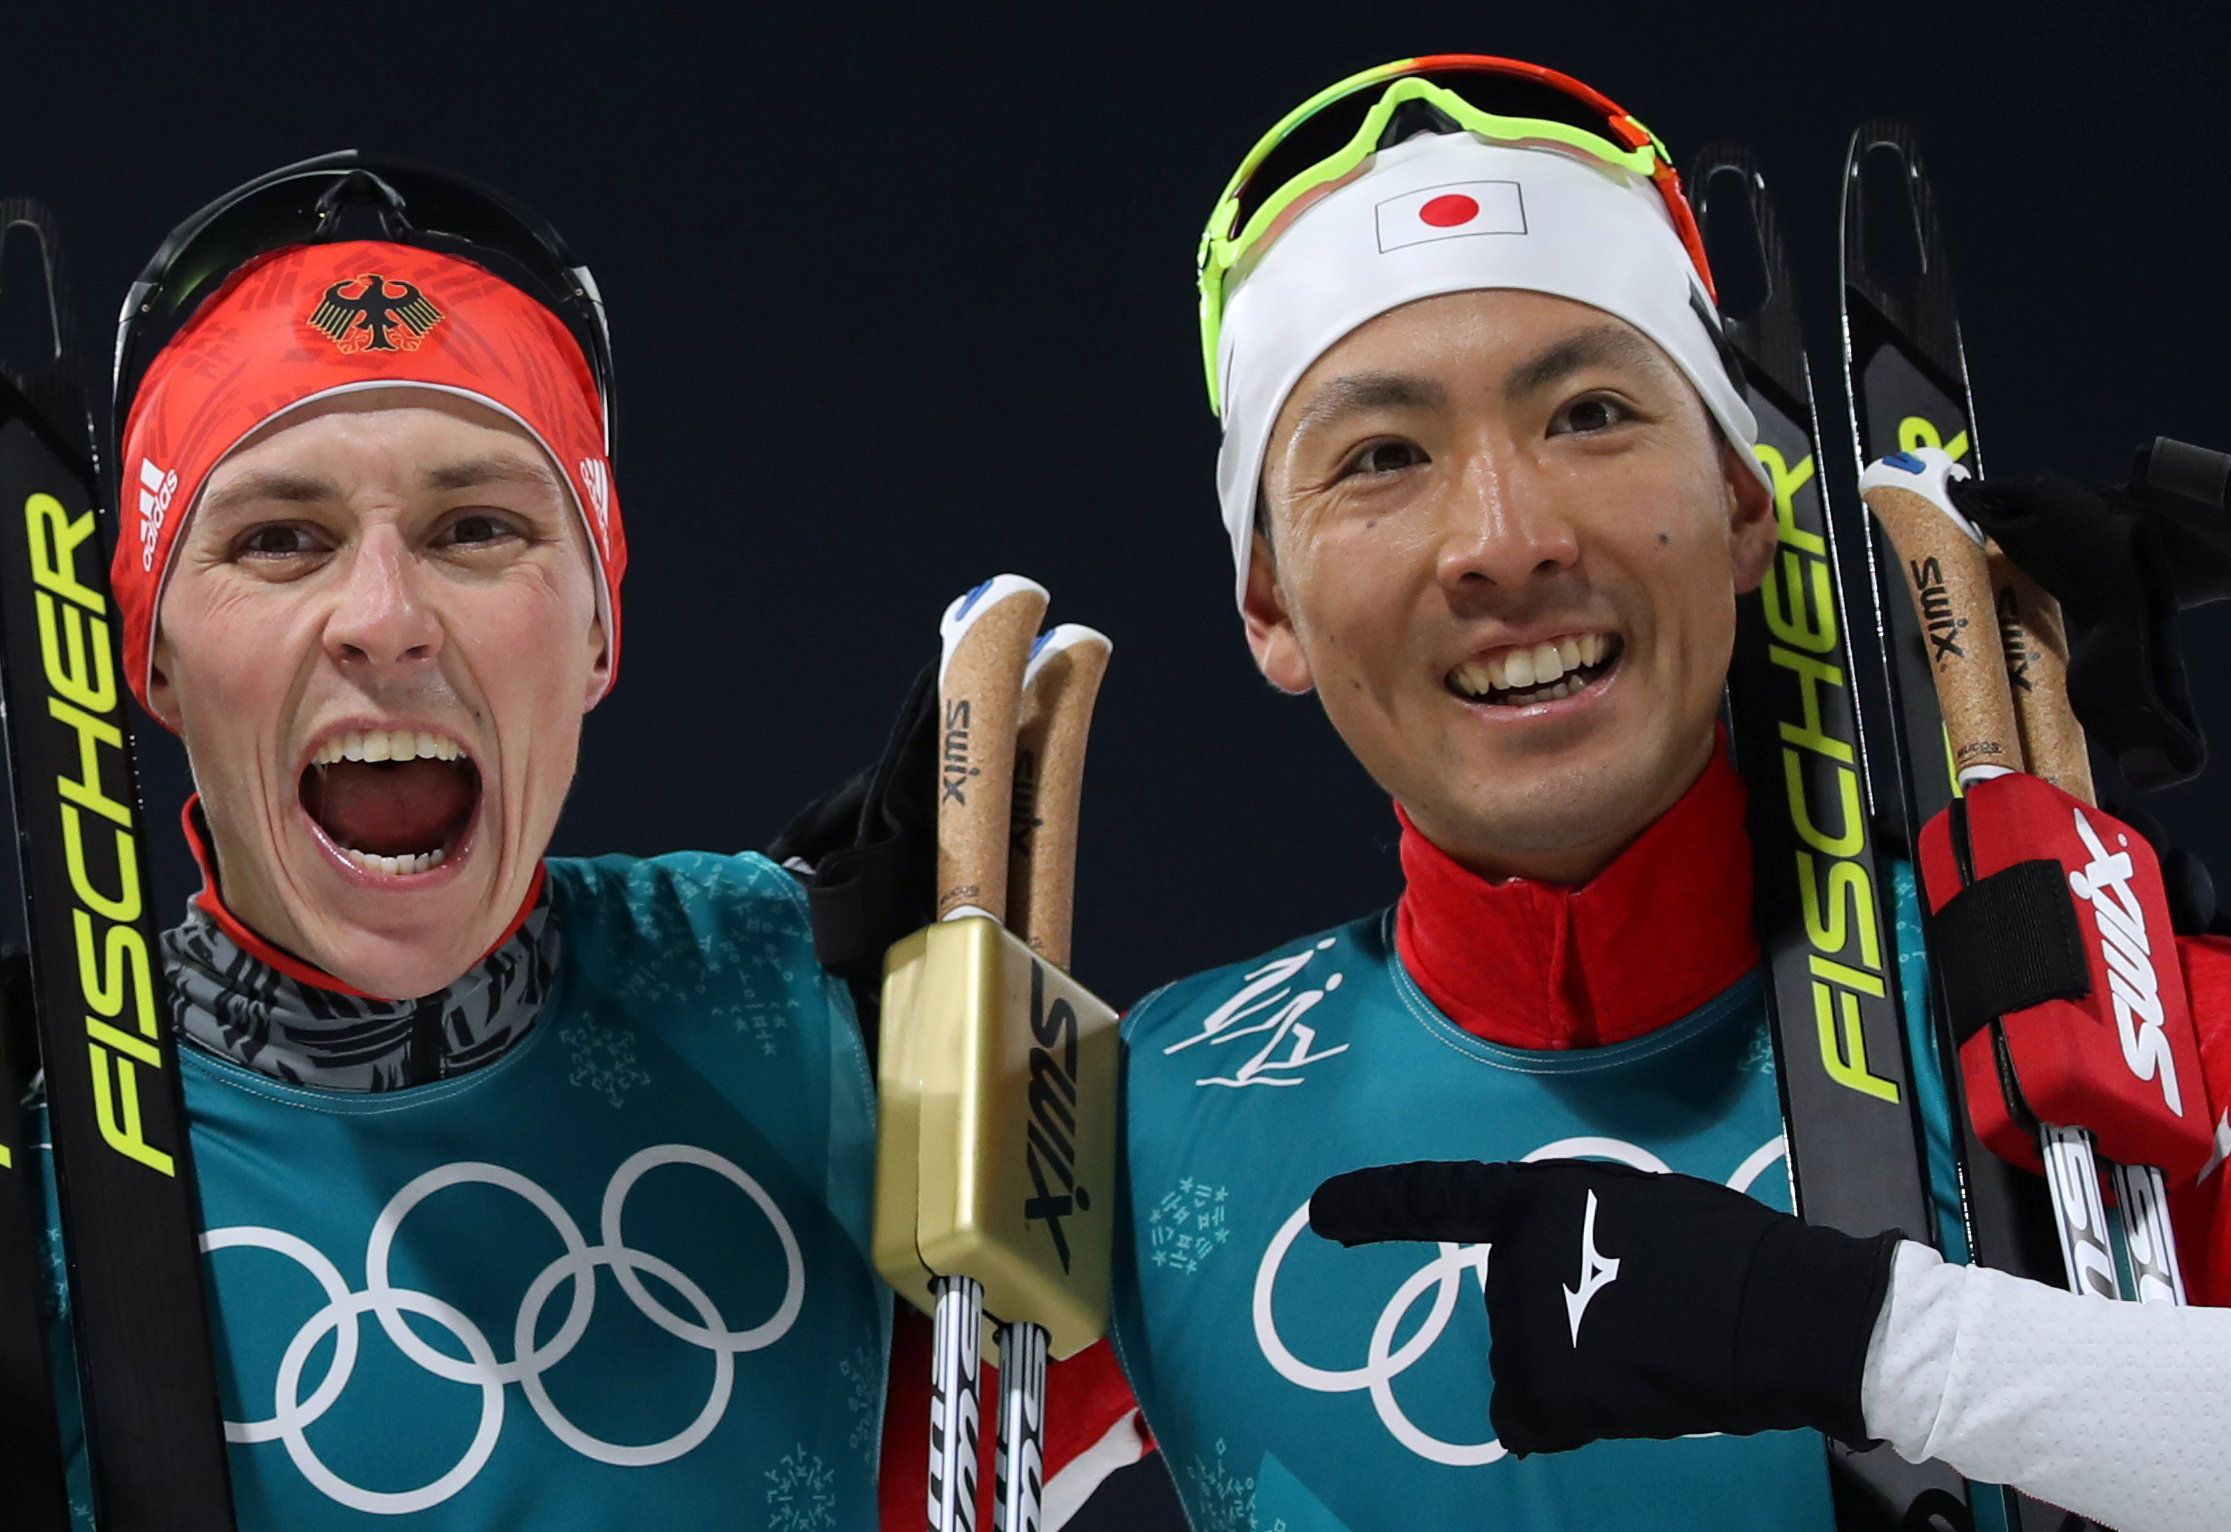 Eric Frenzel of Germany and Akito Watabe celebrate after crossing the finish line. | REUTERS